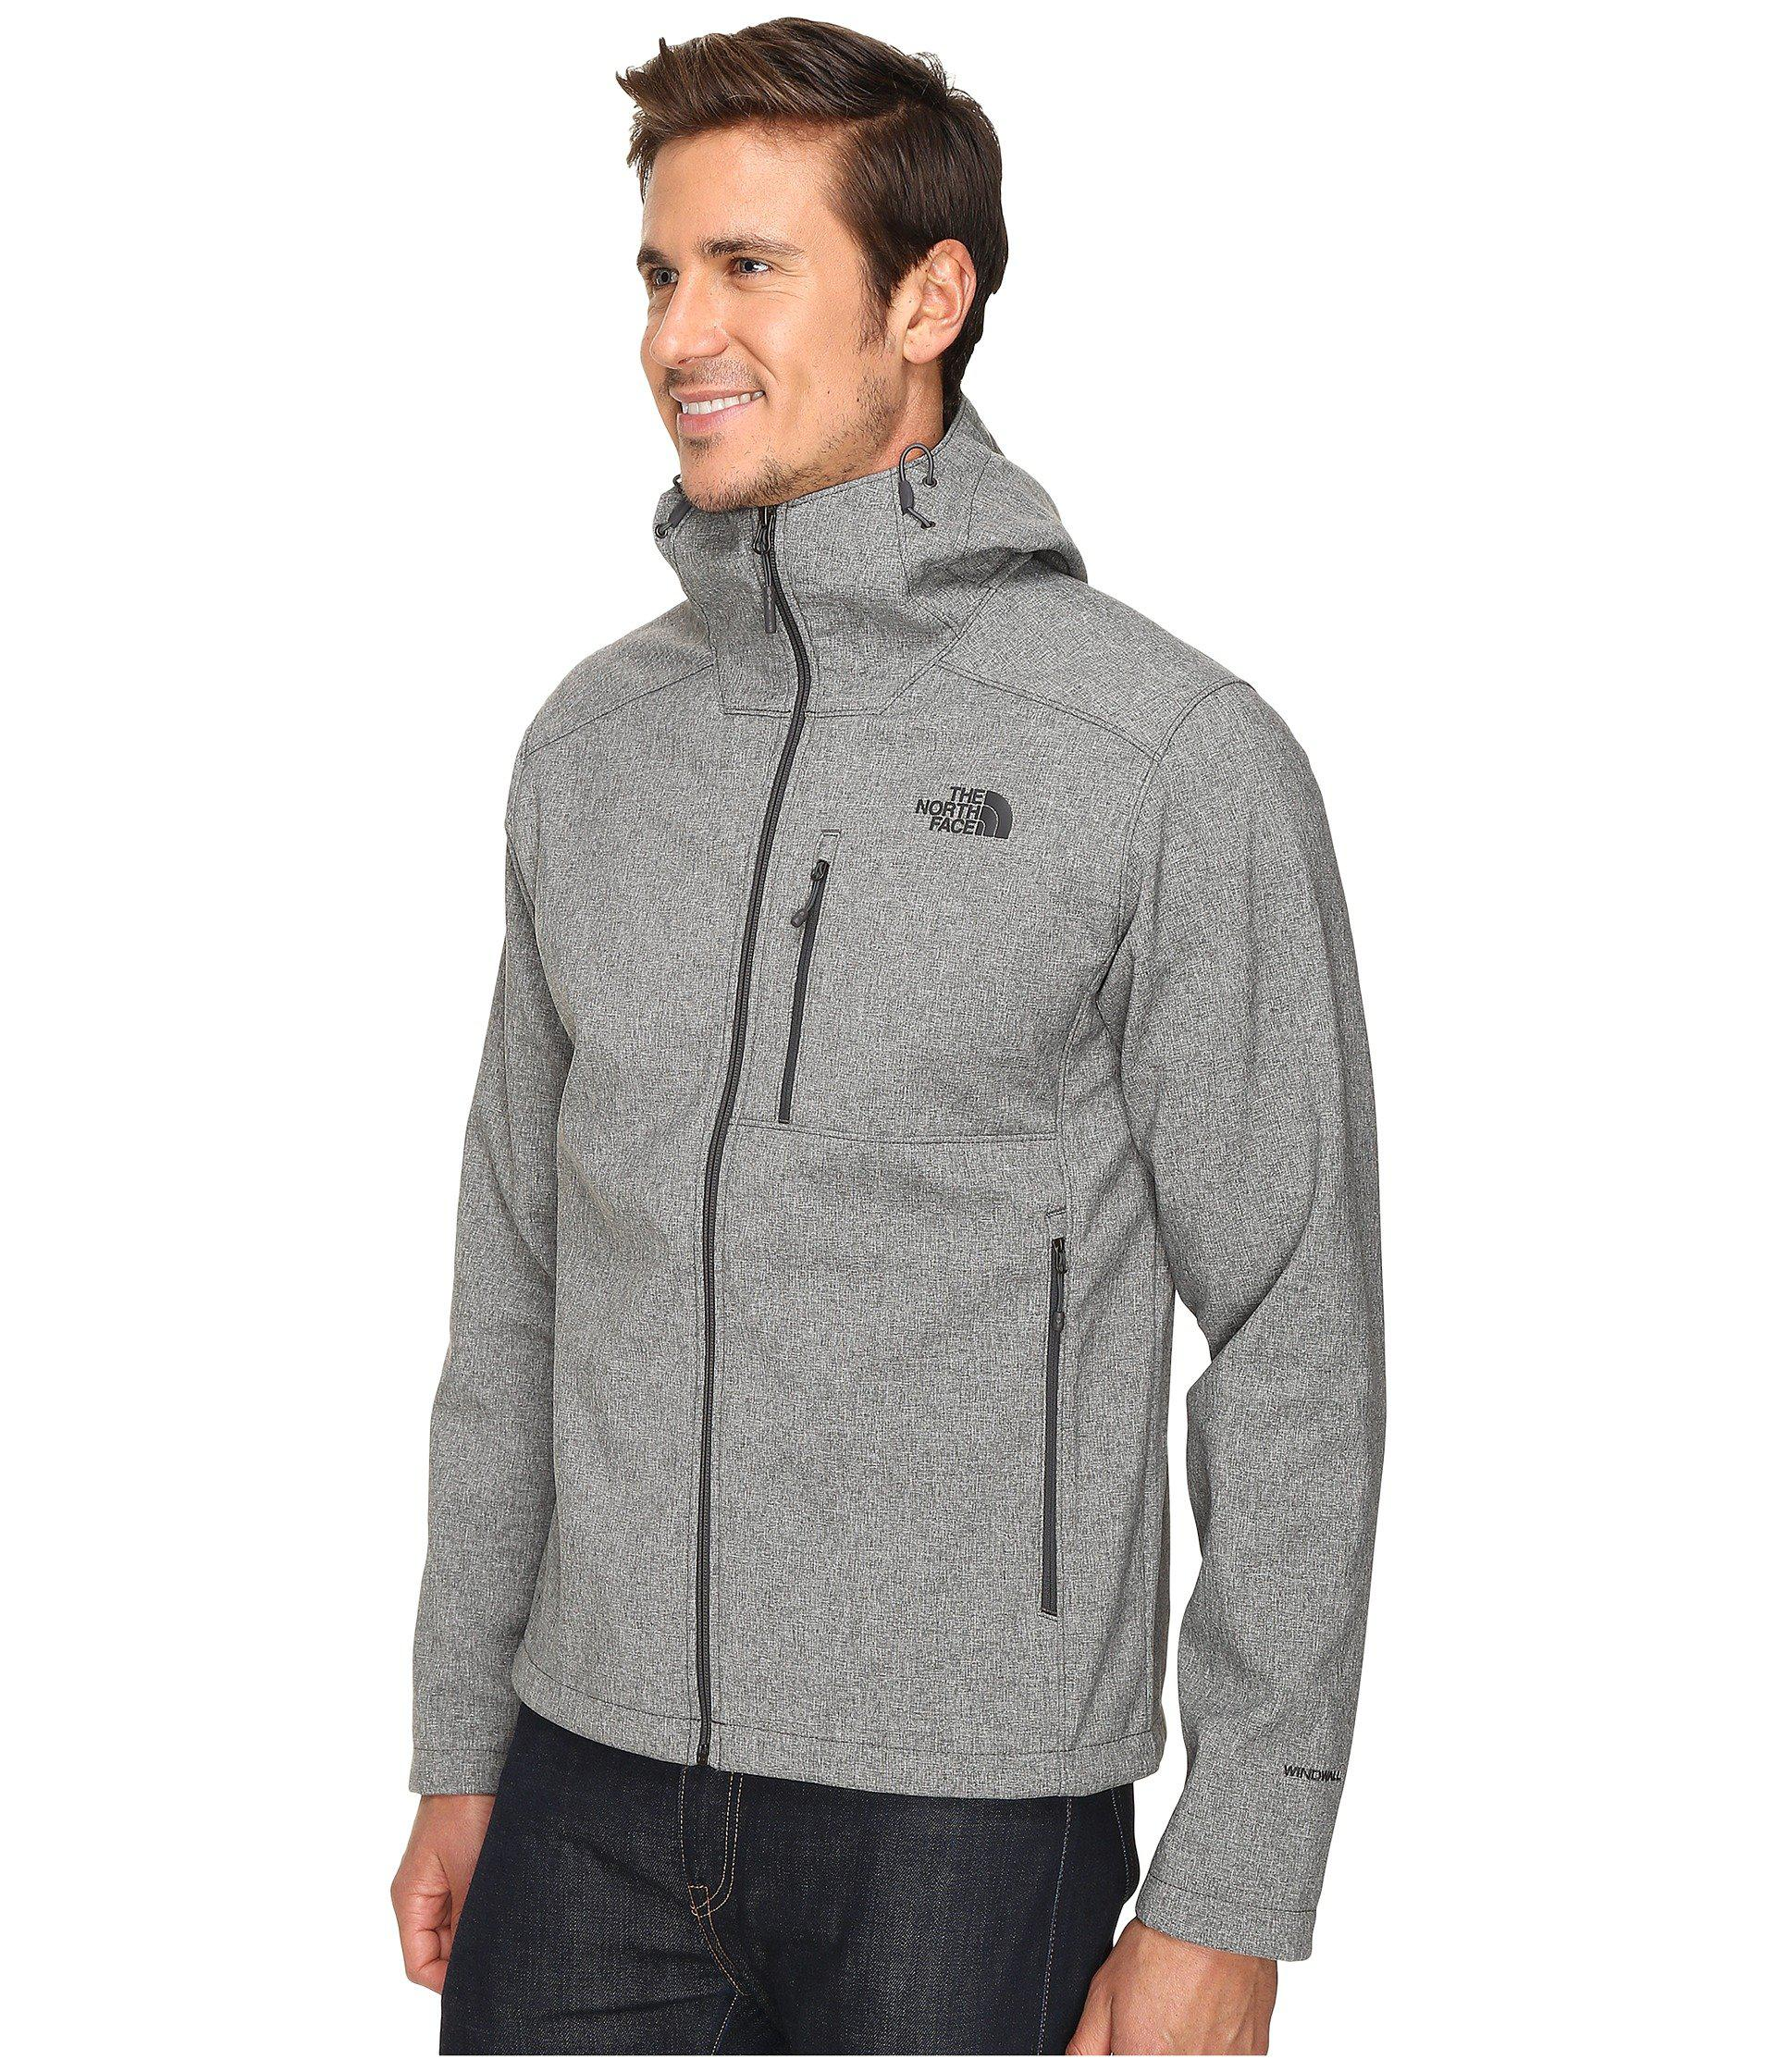 185095ae27f Lyst - The North Face Apex Bionic 2 Hoodie (tnf Black) Men s Sweatshirt in  Gray for Men - Save 41%